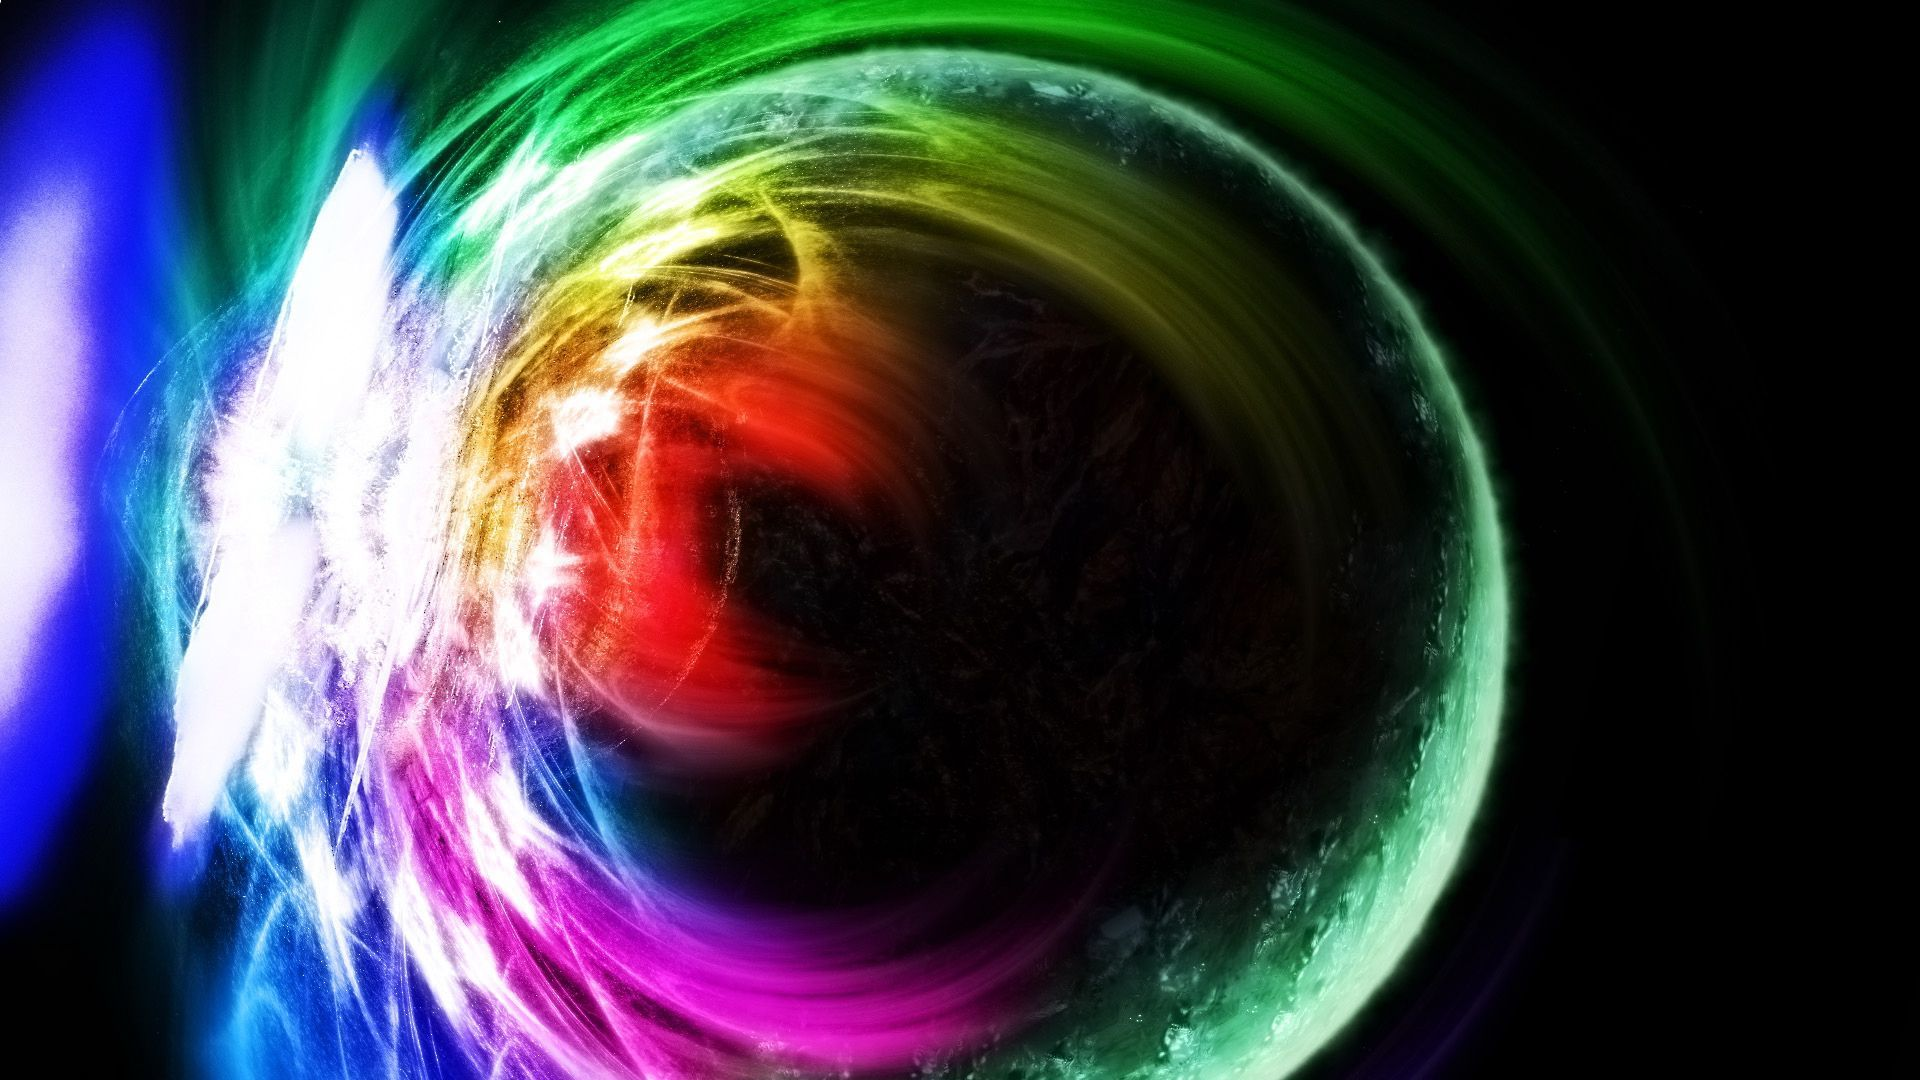 Multicolored light burst behind the planet